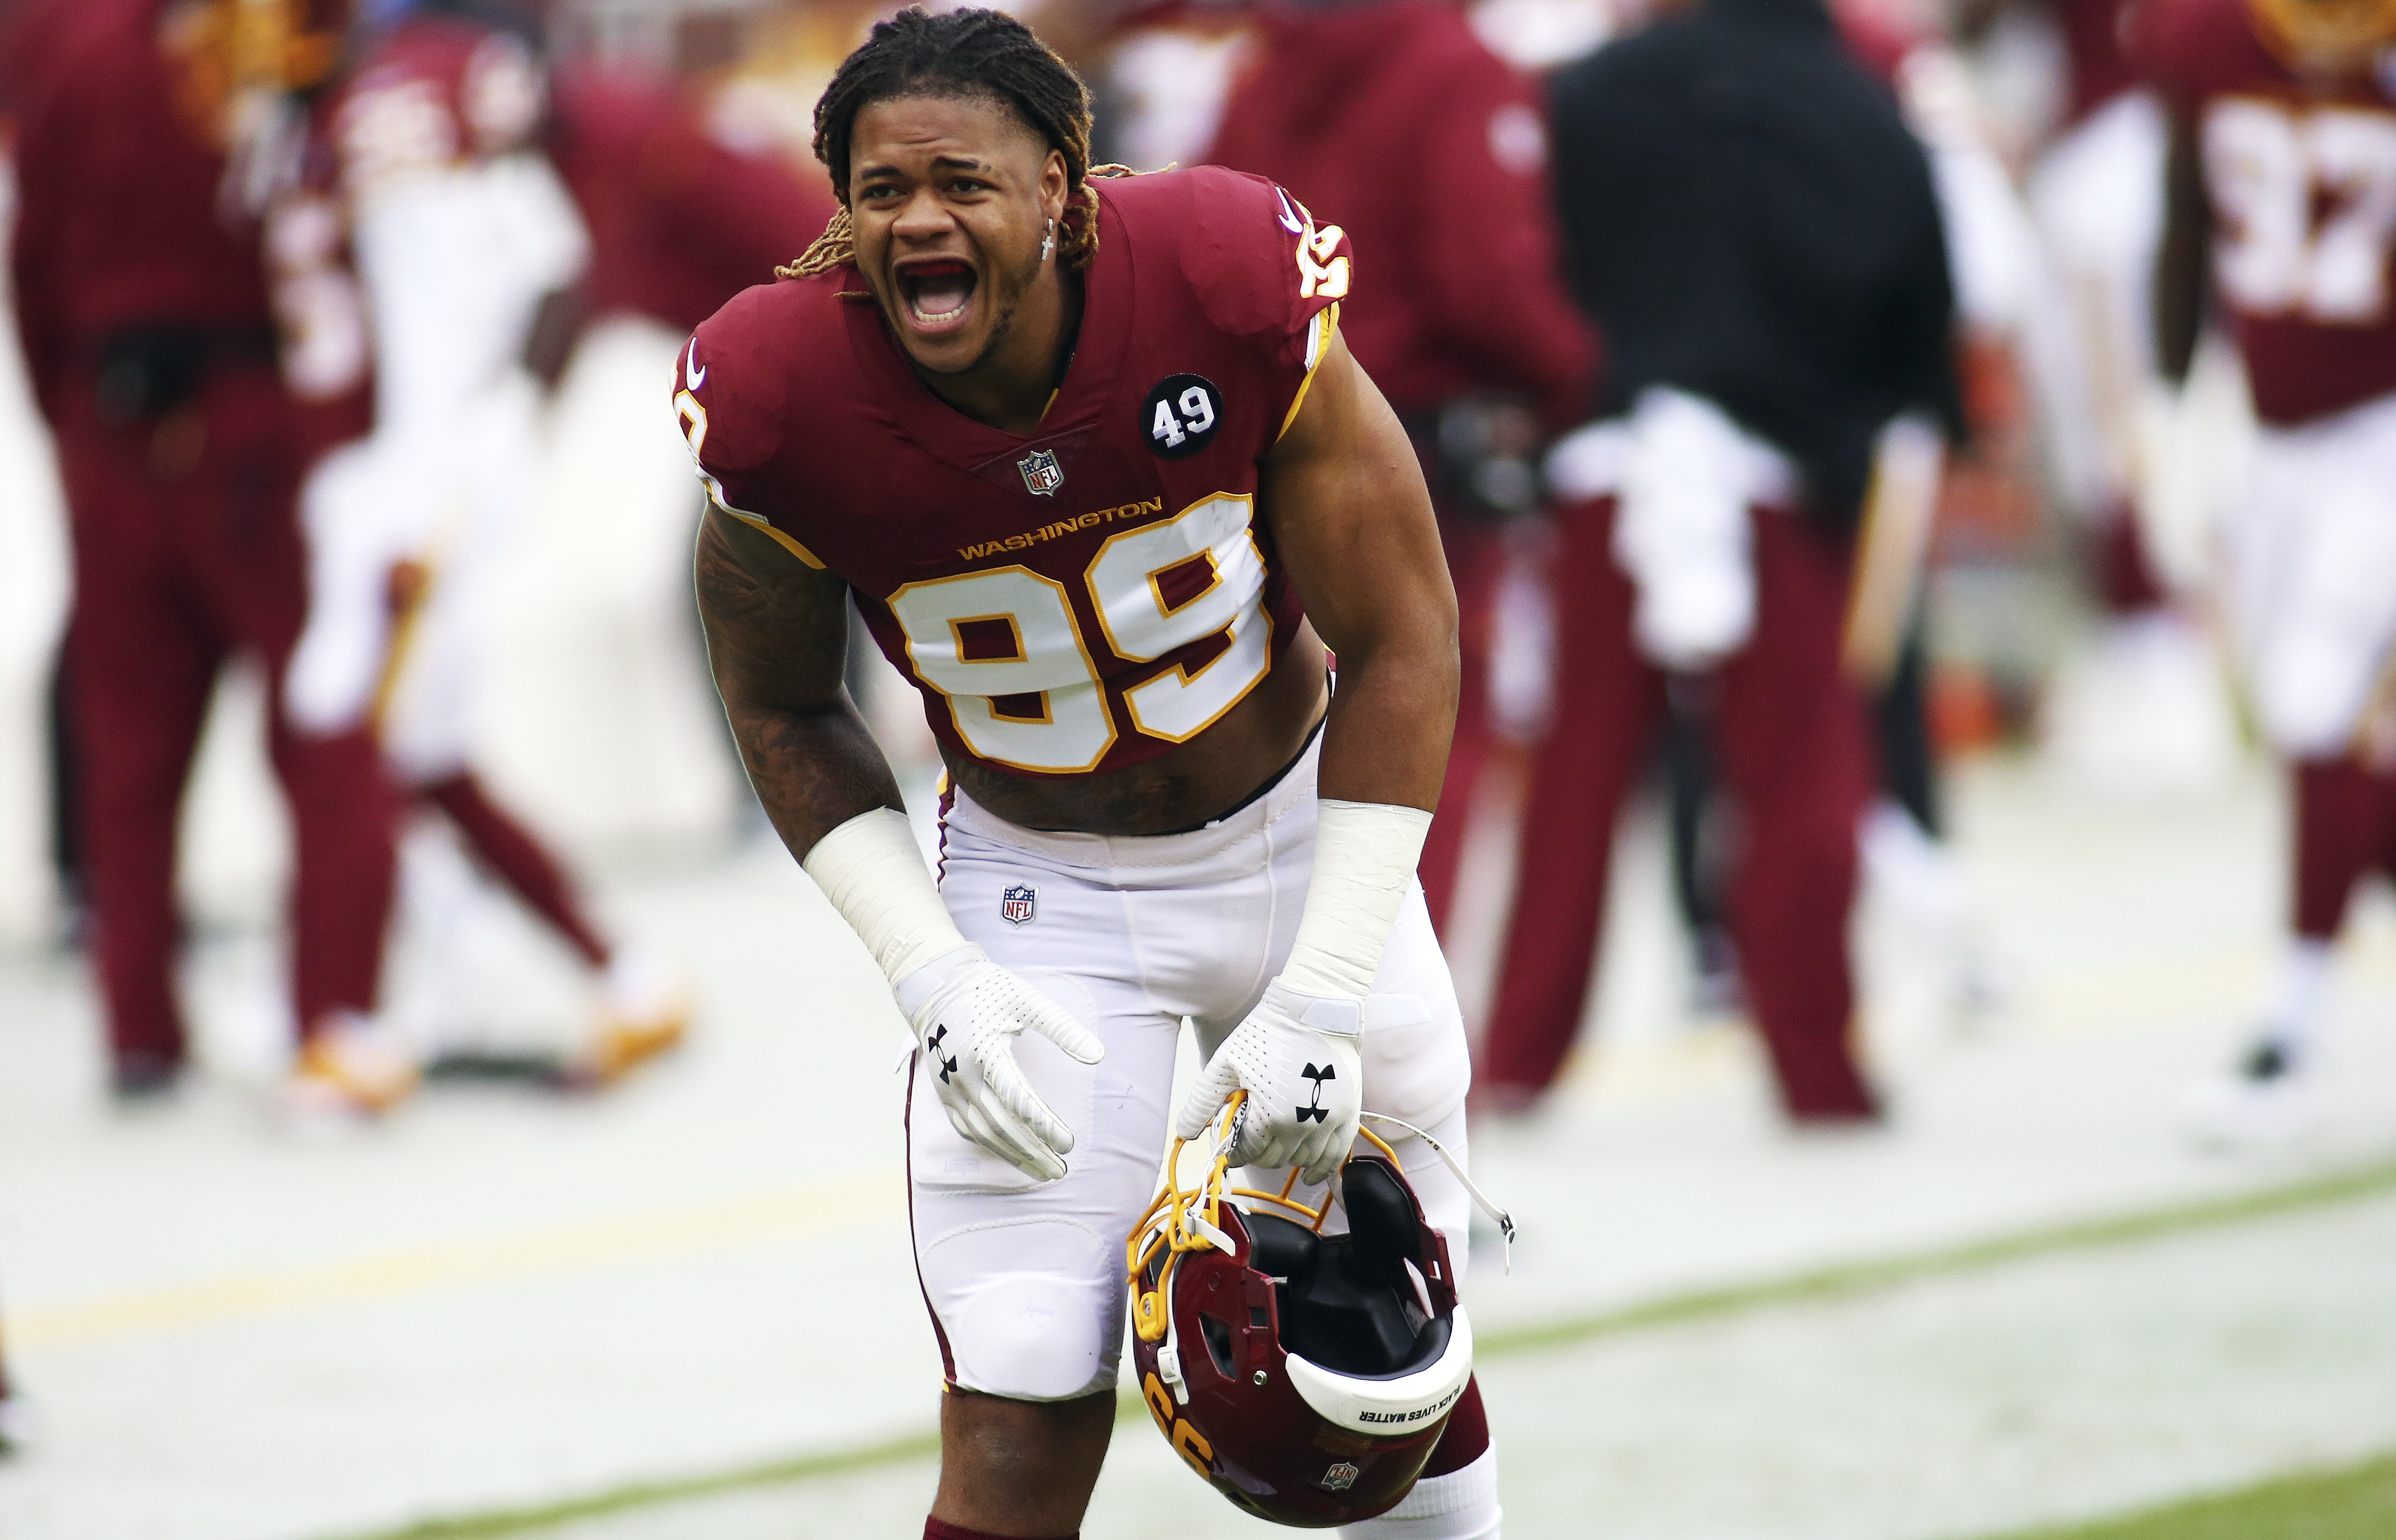 Chase Young Faces Tough Critic Over Lack Of Sacks His Mom Washington Times